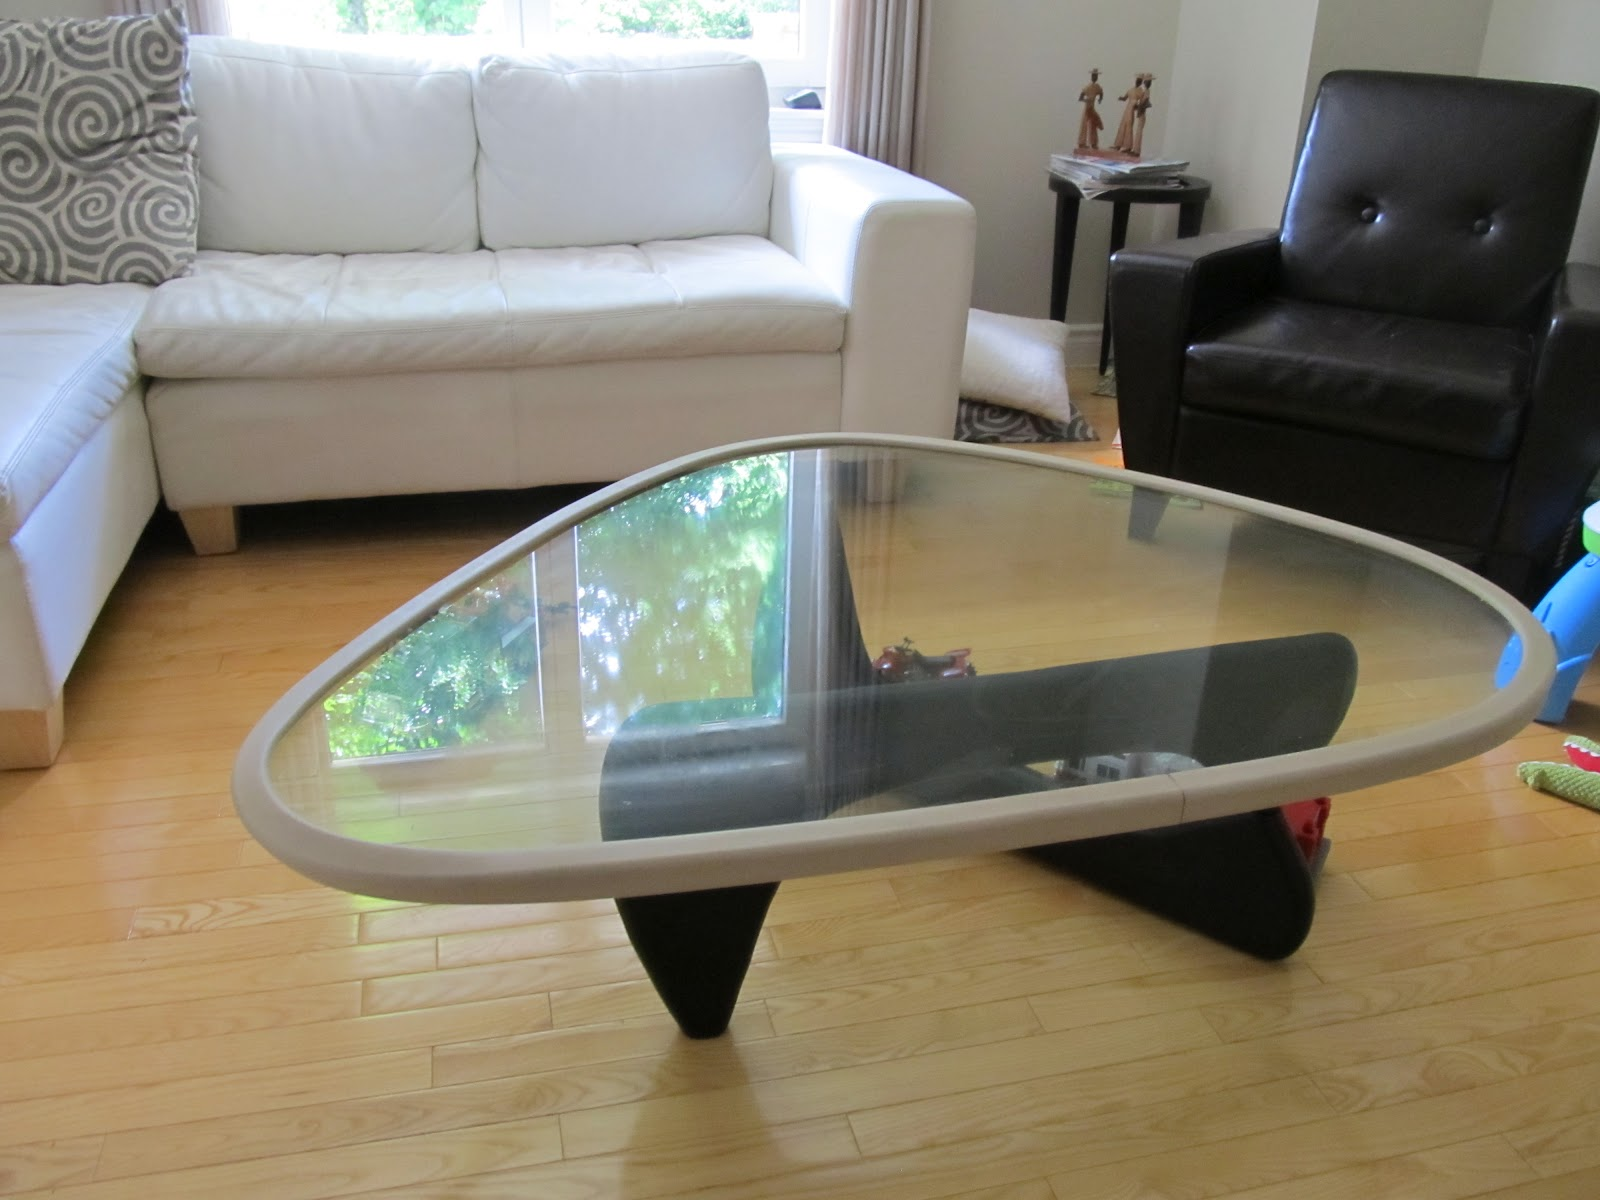 Baby Proofing A Crash Course Keeping It Real Housewife - Mini noguchi table